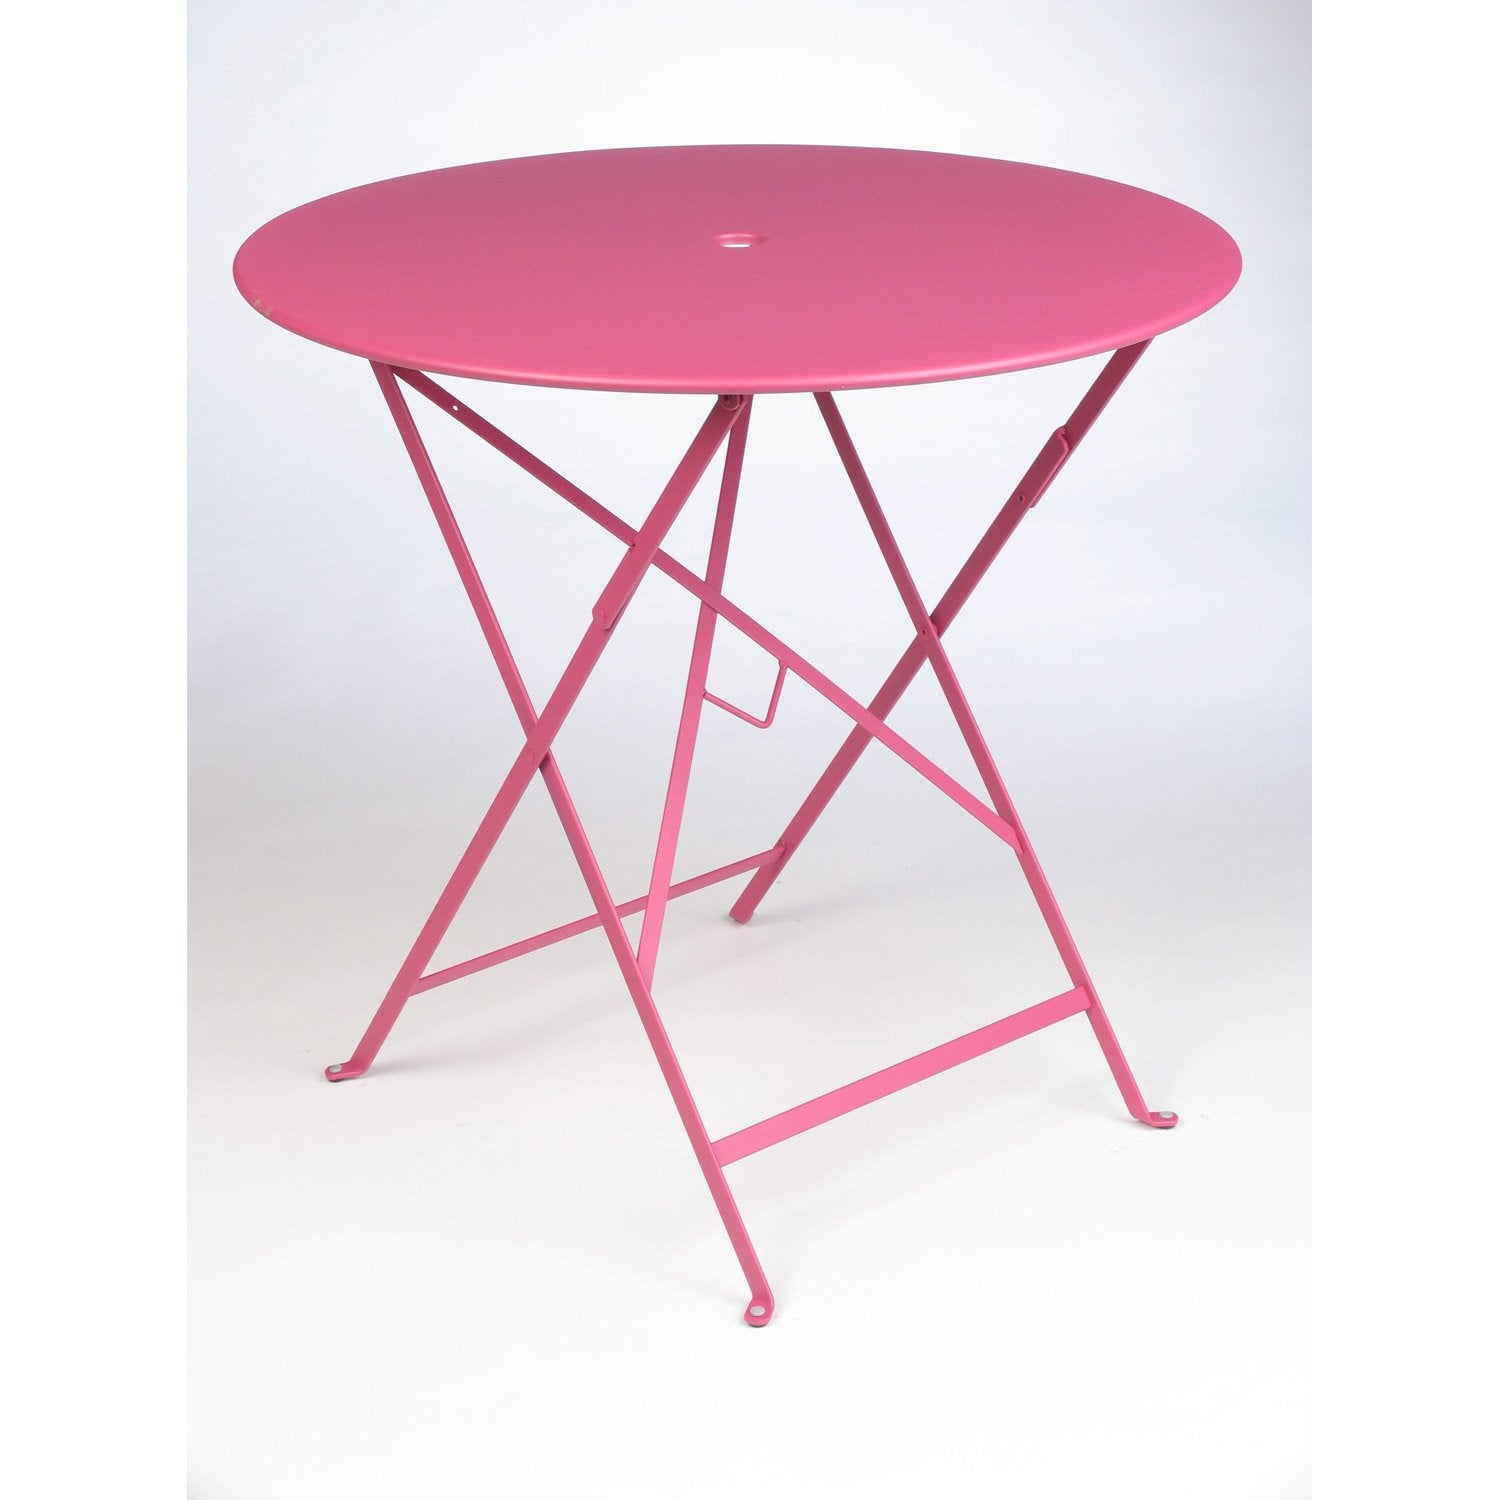 table de jardin fermob bistro ronde fuchsia leroy merlin. Black Bedroom Furniture Sets. Home Design Ideas